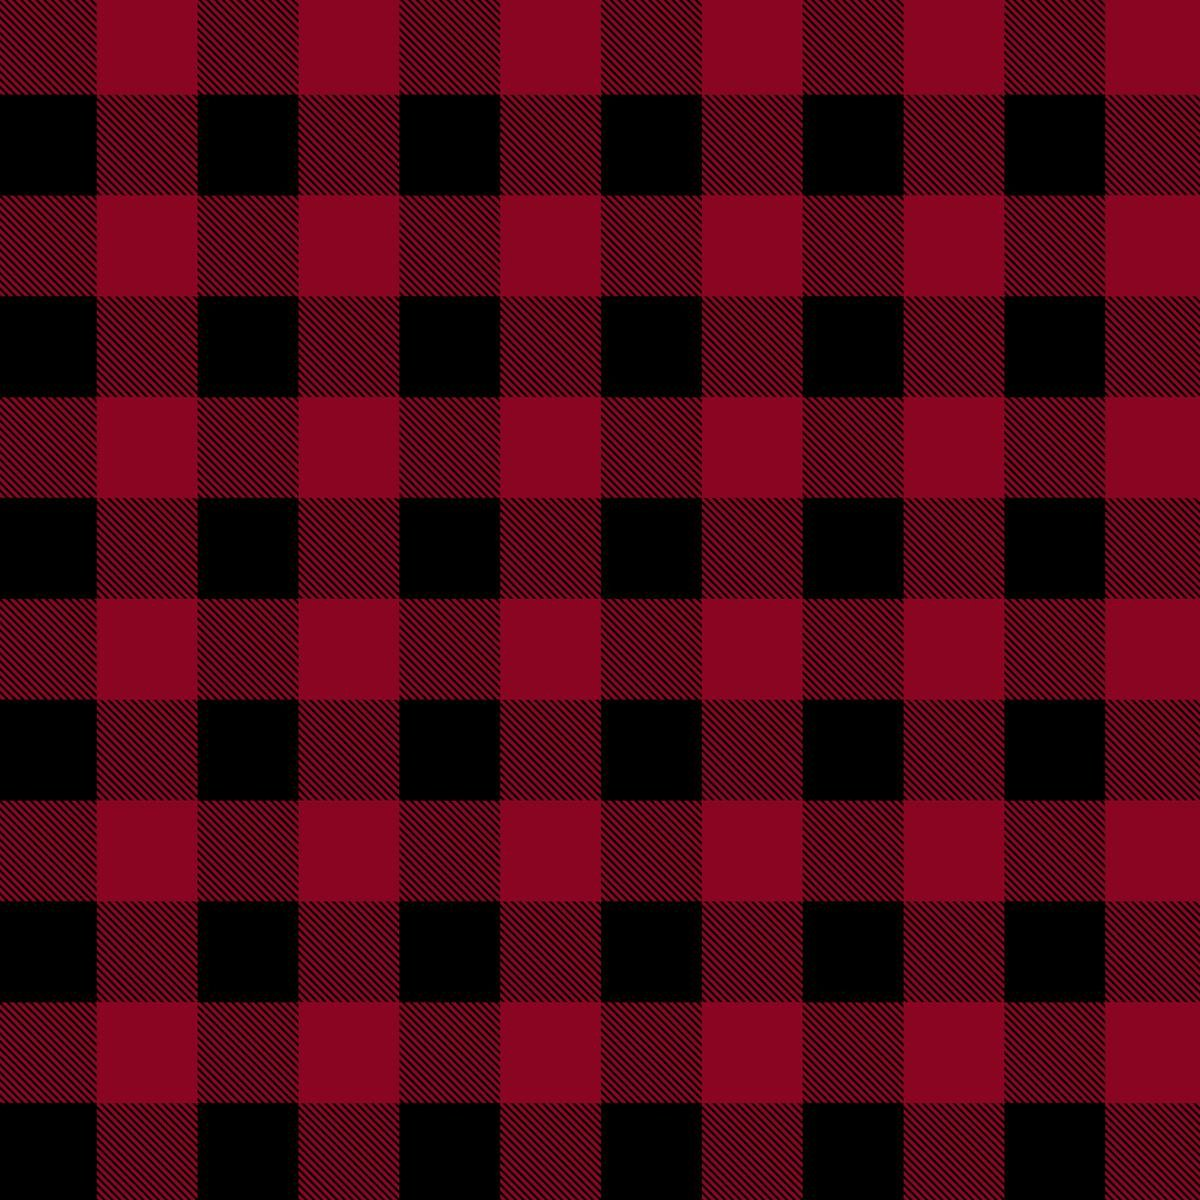 Canadian Christmas Buffalo Check 51869D 1 Red